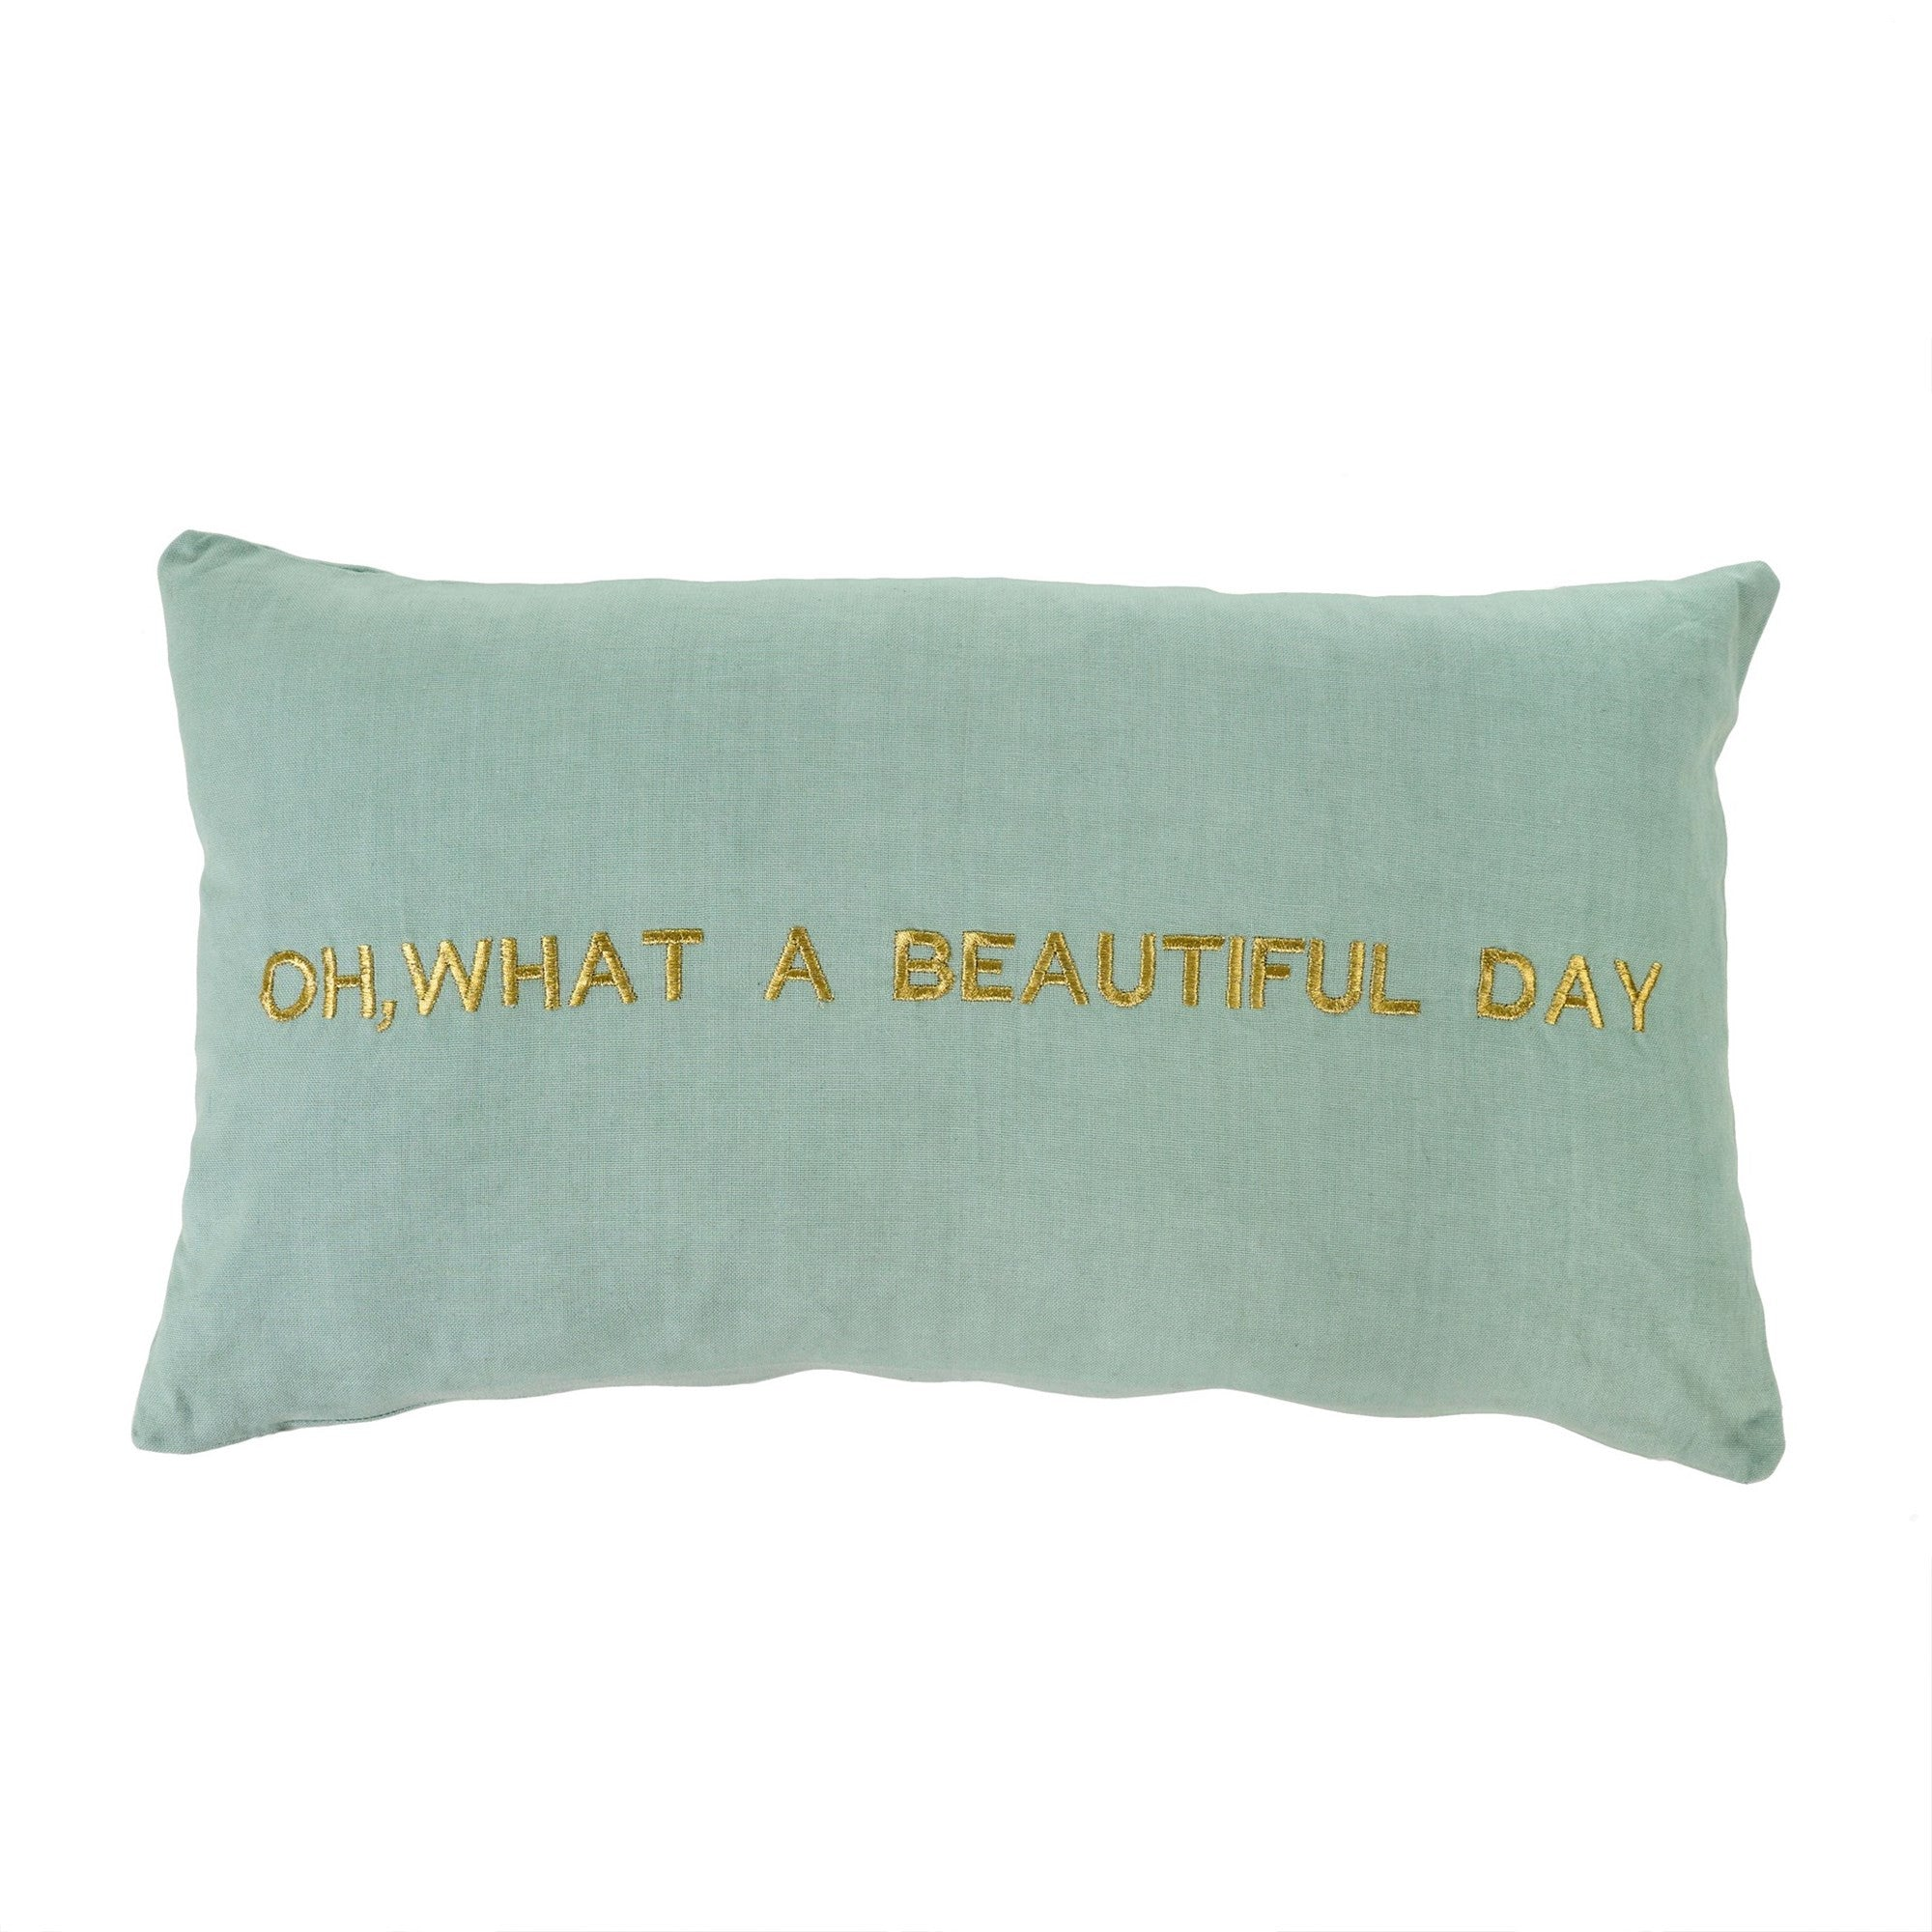 """Oh what a beautiful day"" Embroidered Pillow -  Soft Furnishings - Indaba Trading - Putti Fine Furnishings Toronto Canada"